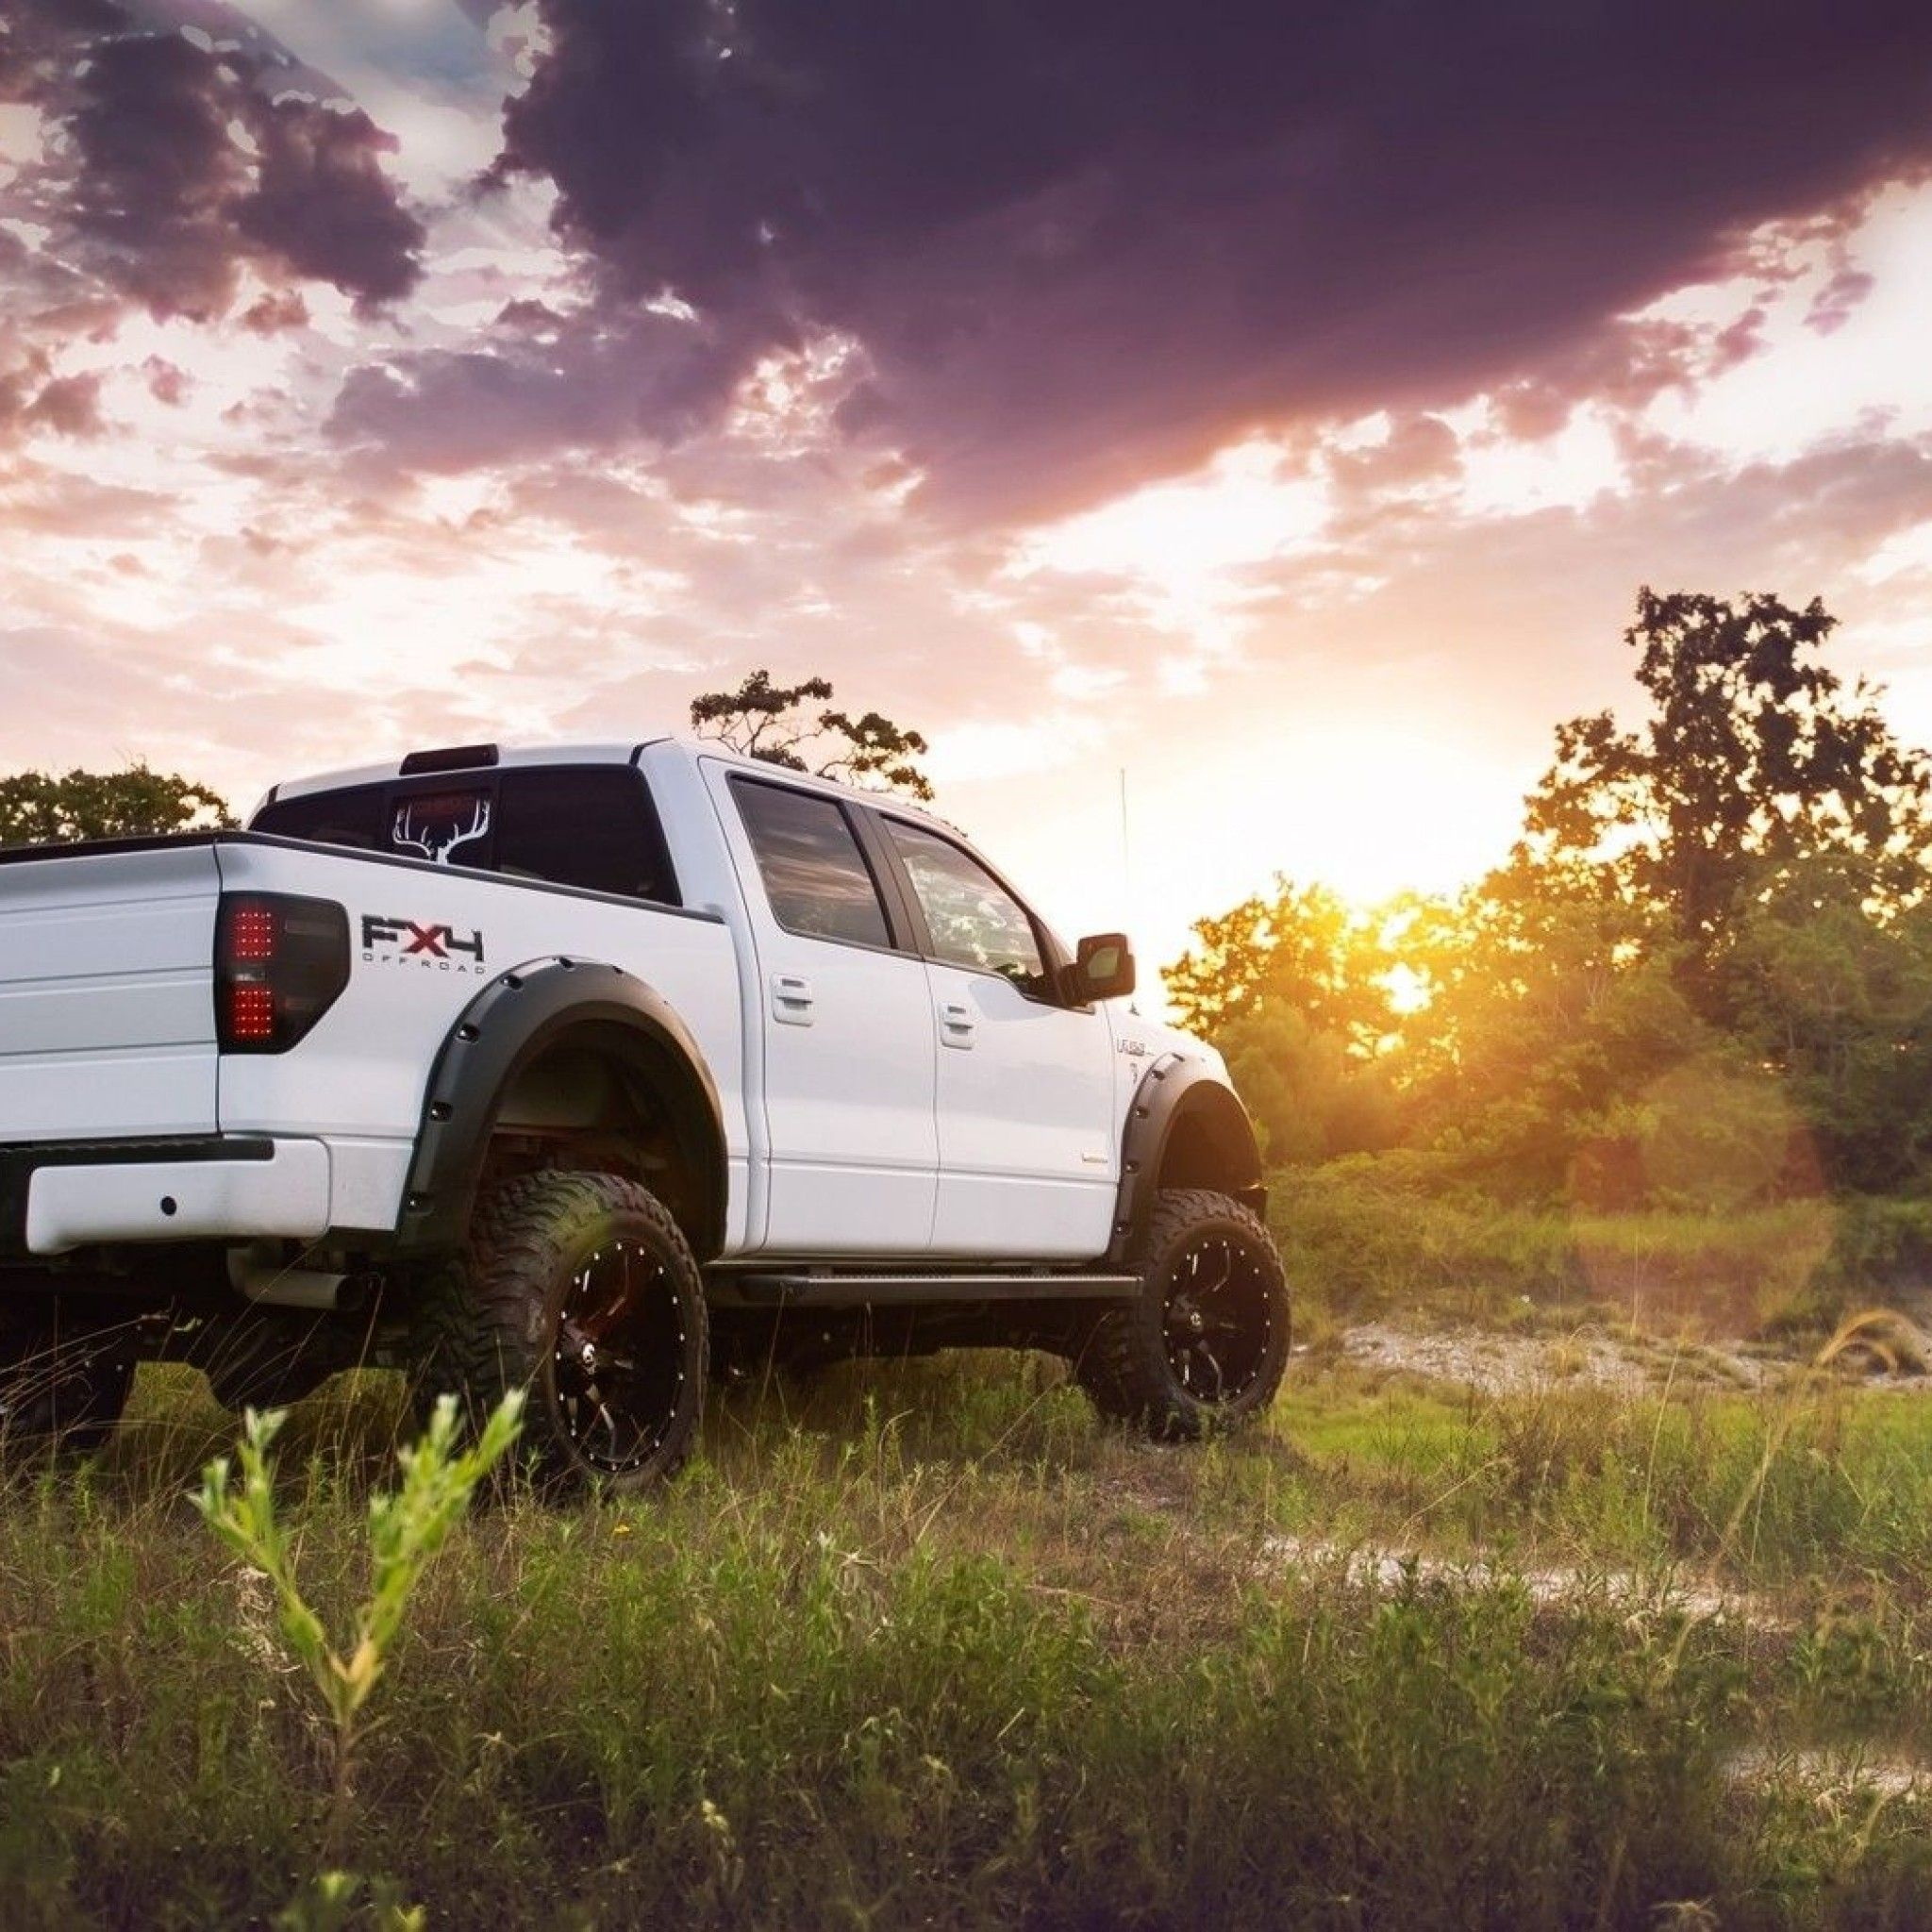 Ford Truck Iphone Wallpaper Desktop Con Imagenes 4k Hd